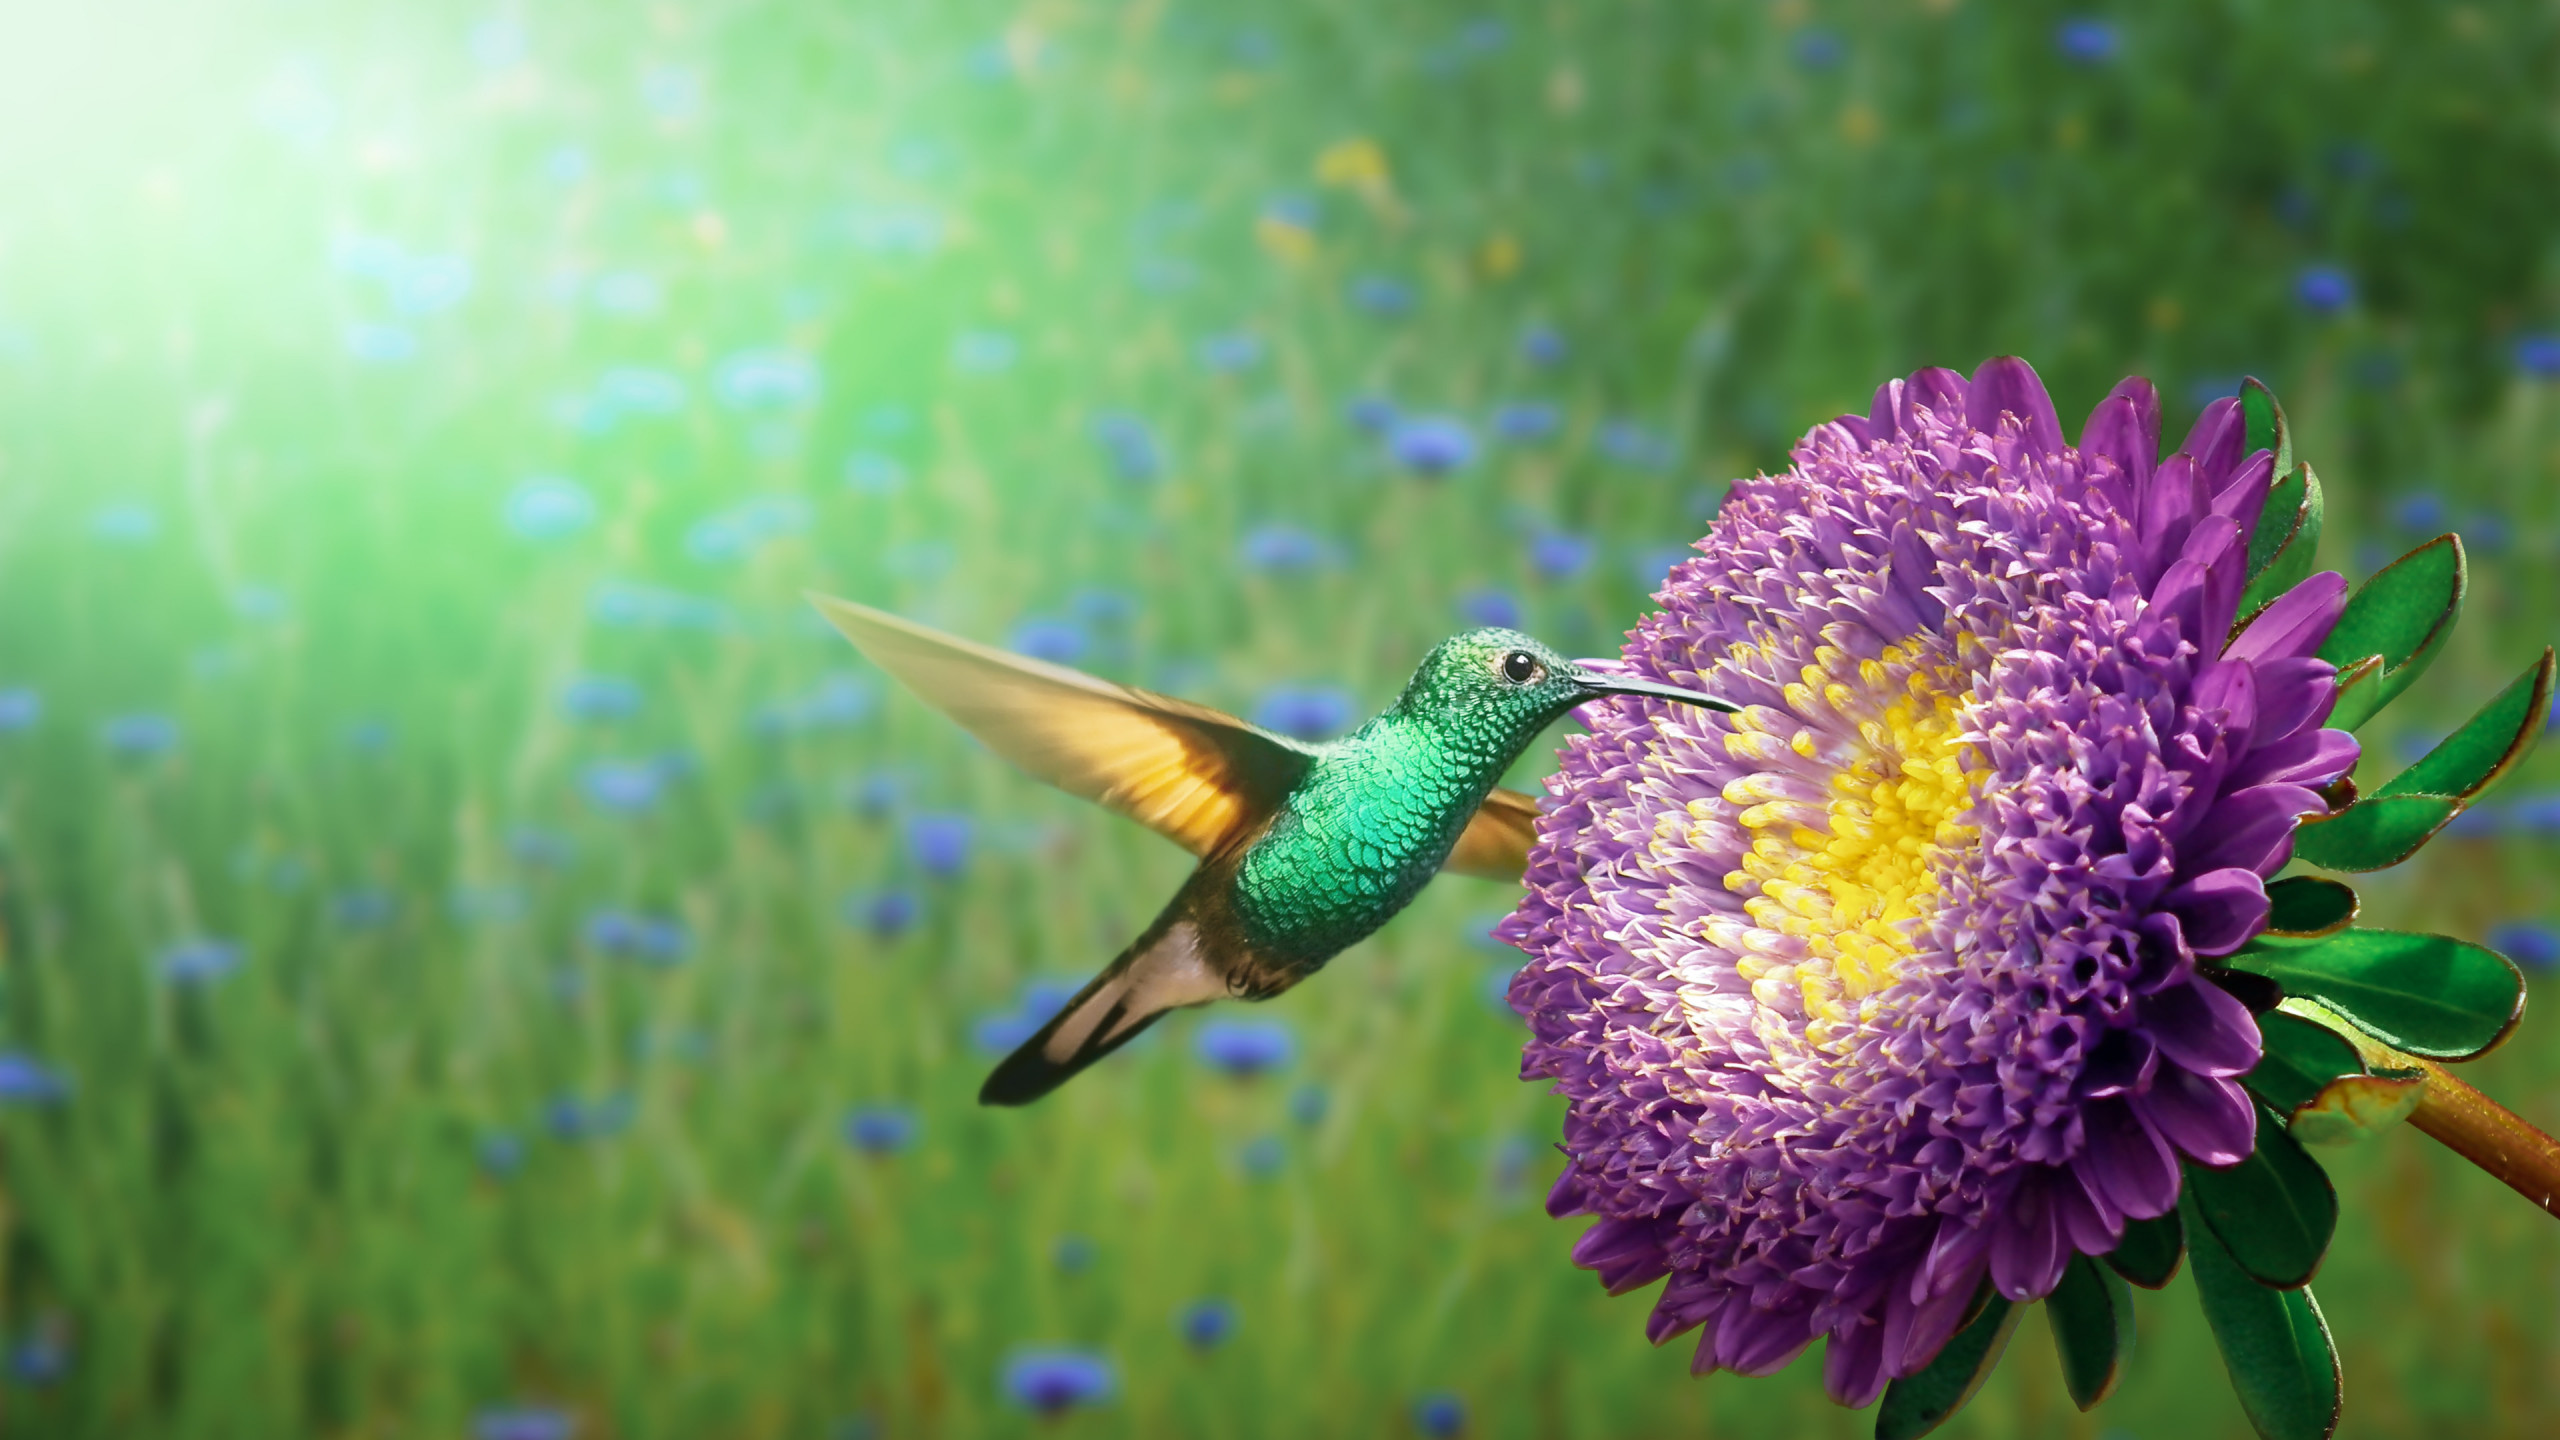 Hummingbird wallpaper 2560x1440